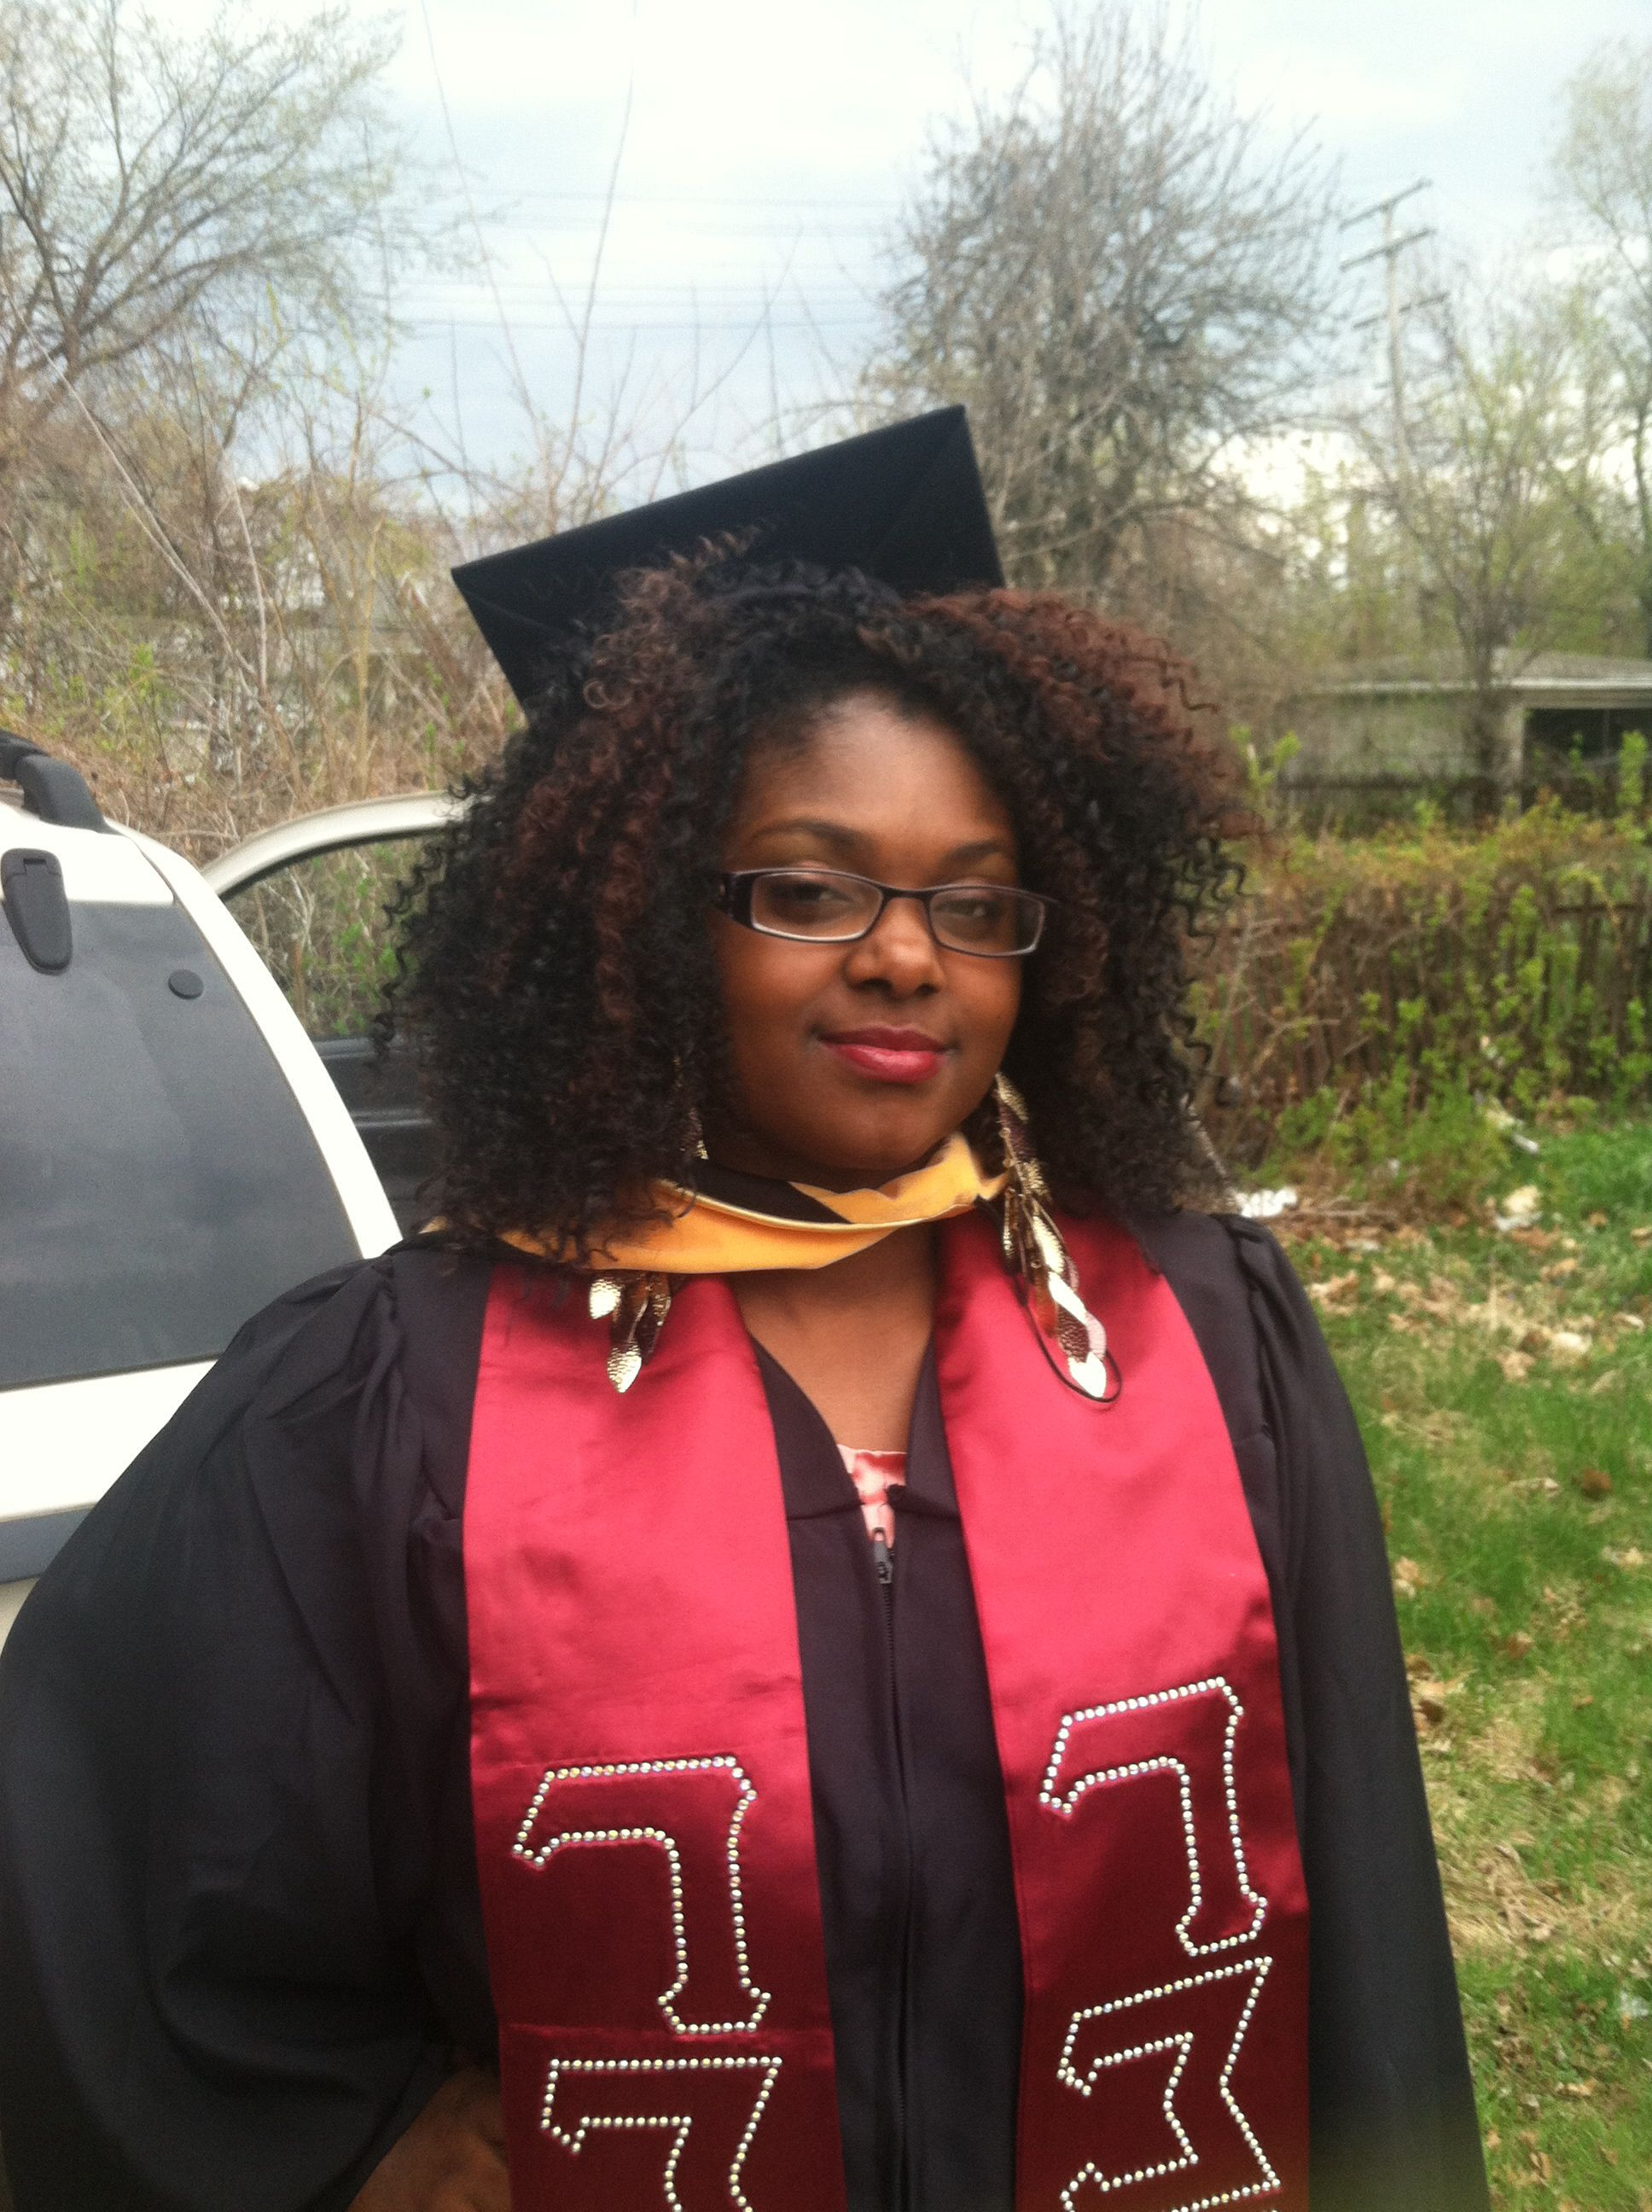 Graduation Cap And Crochet Braids | Natural Hair In 2018 | Pinterest Within Graduation Cap Hairstyles For Short Hair (Gallery 24 of 25)